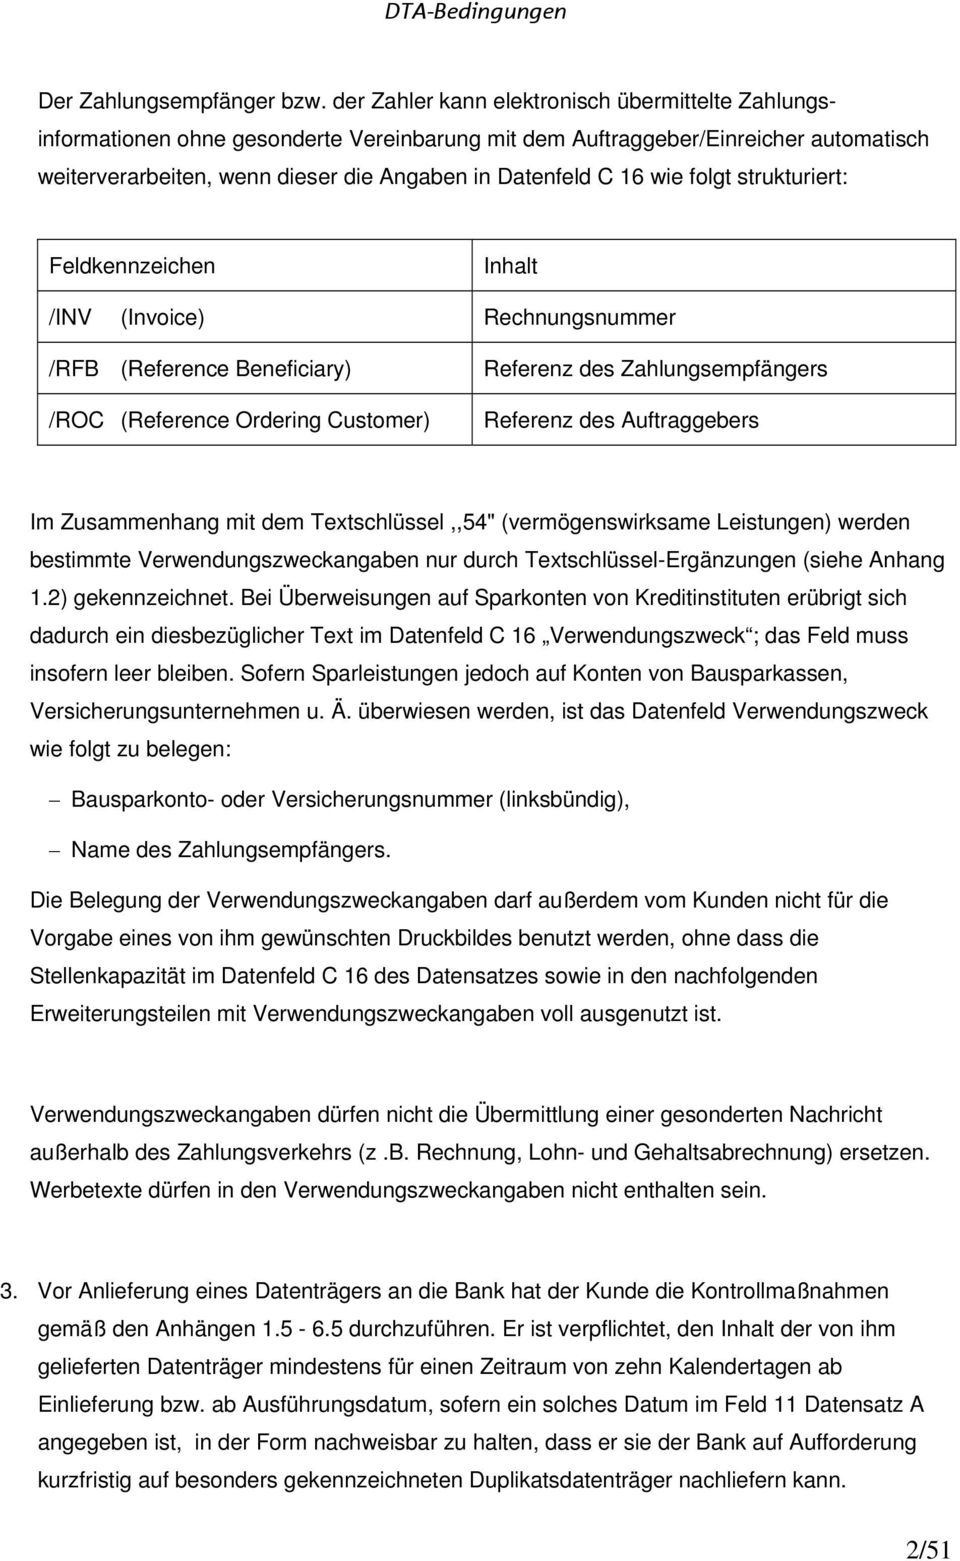 wie folgt strukturiert: Feldkennzeichen Inhalt /INV (Invoice) Rechnungsnummer /RFB (Reference Beneficiary) /ROC (Reference Ordering Customer) Referenz des Zahlungsempfängers Referenz des